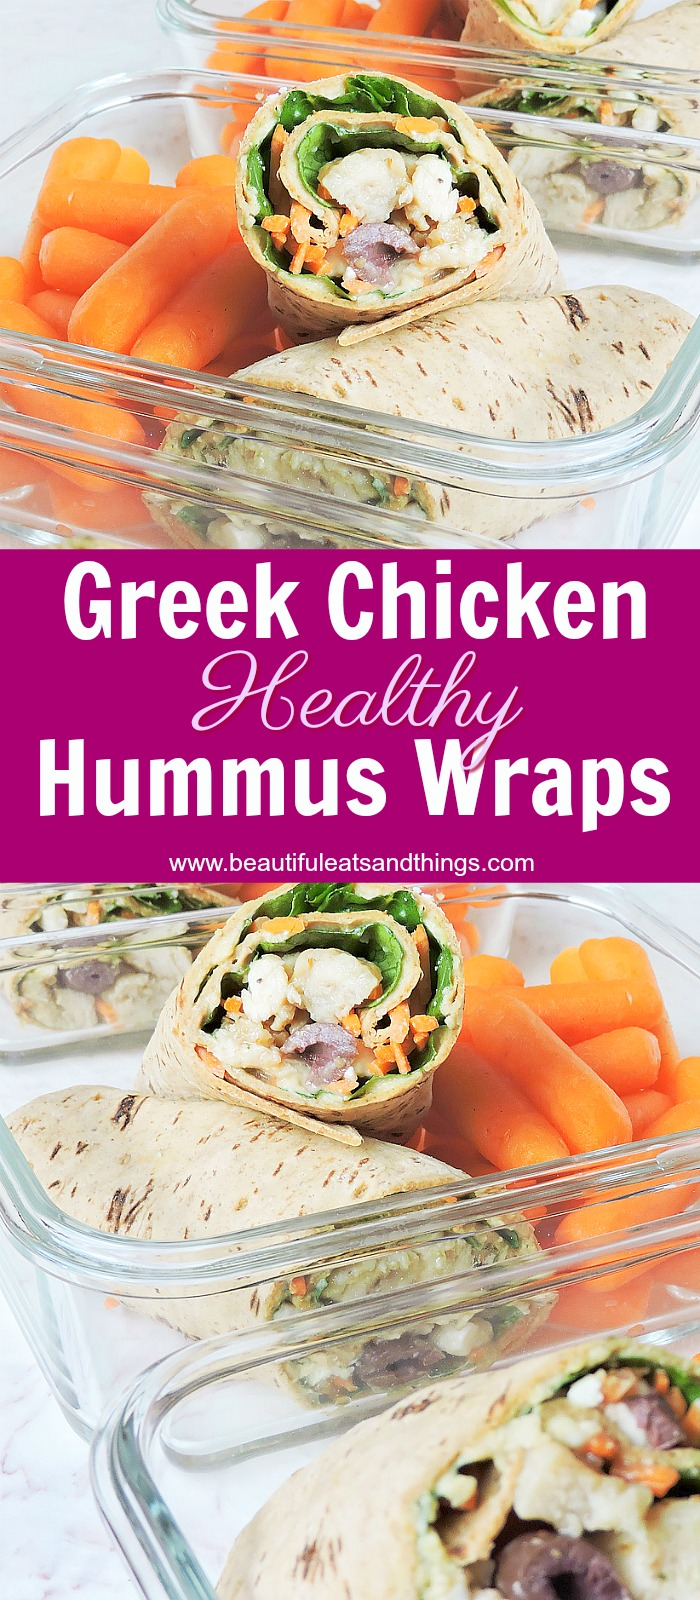 Healthy Greek Chicken Hummus Wraps